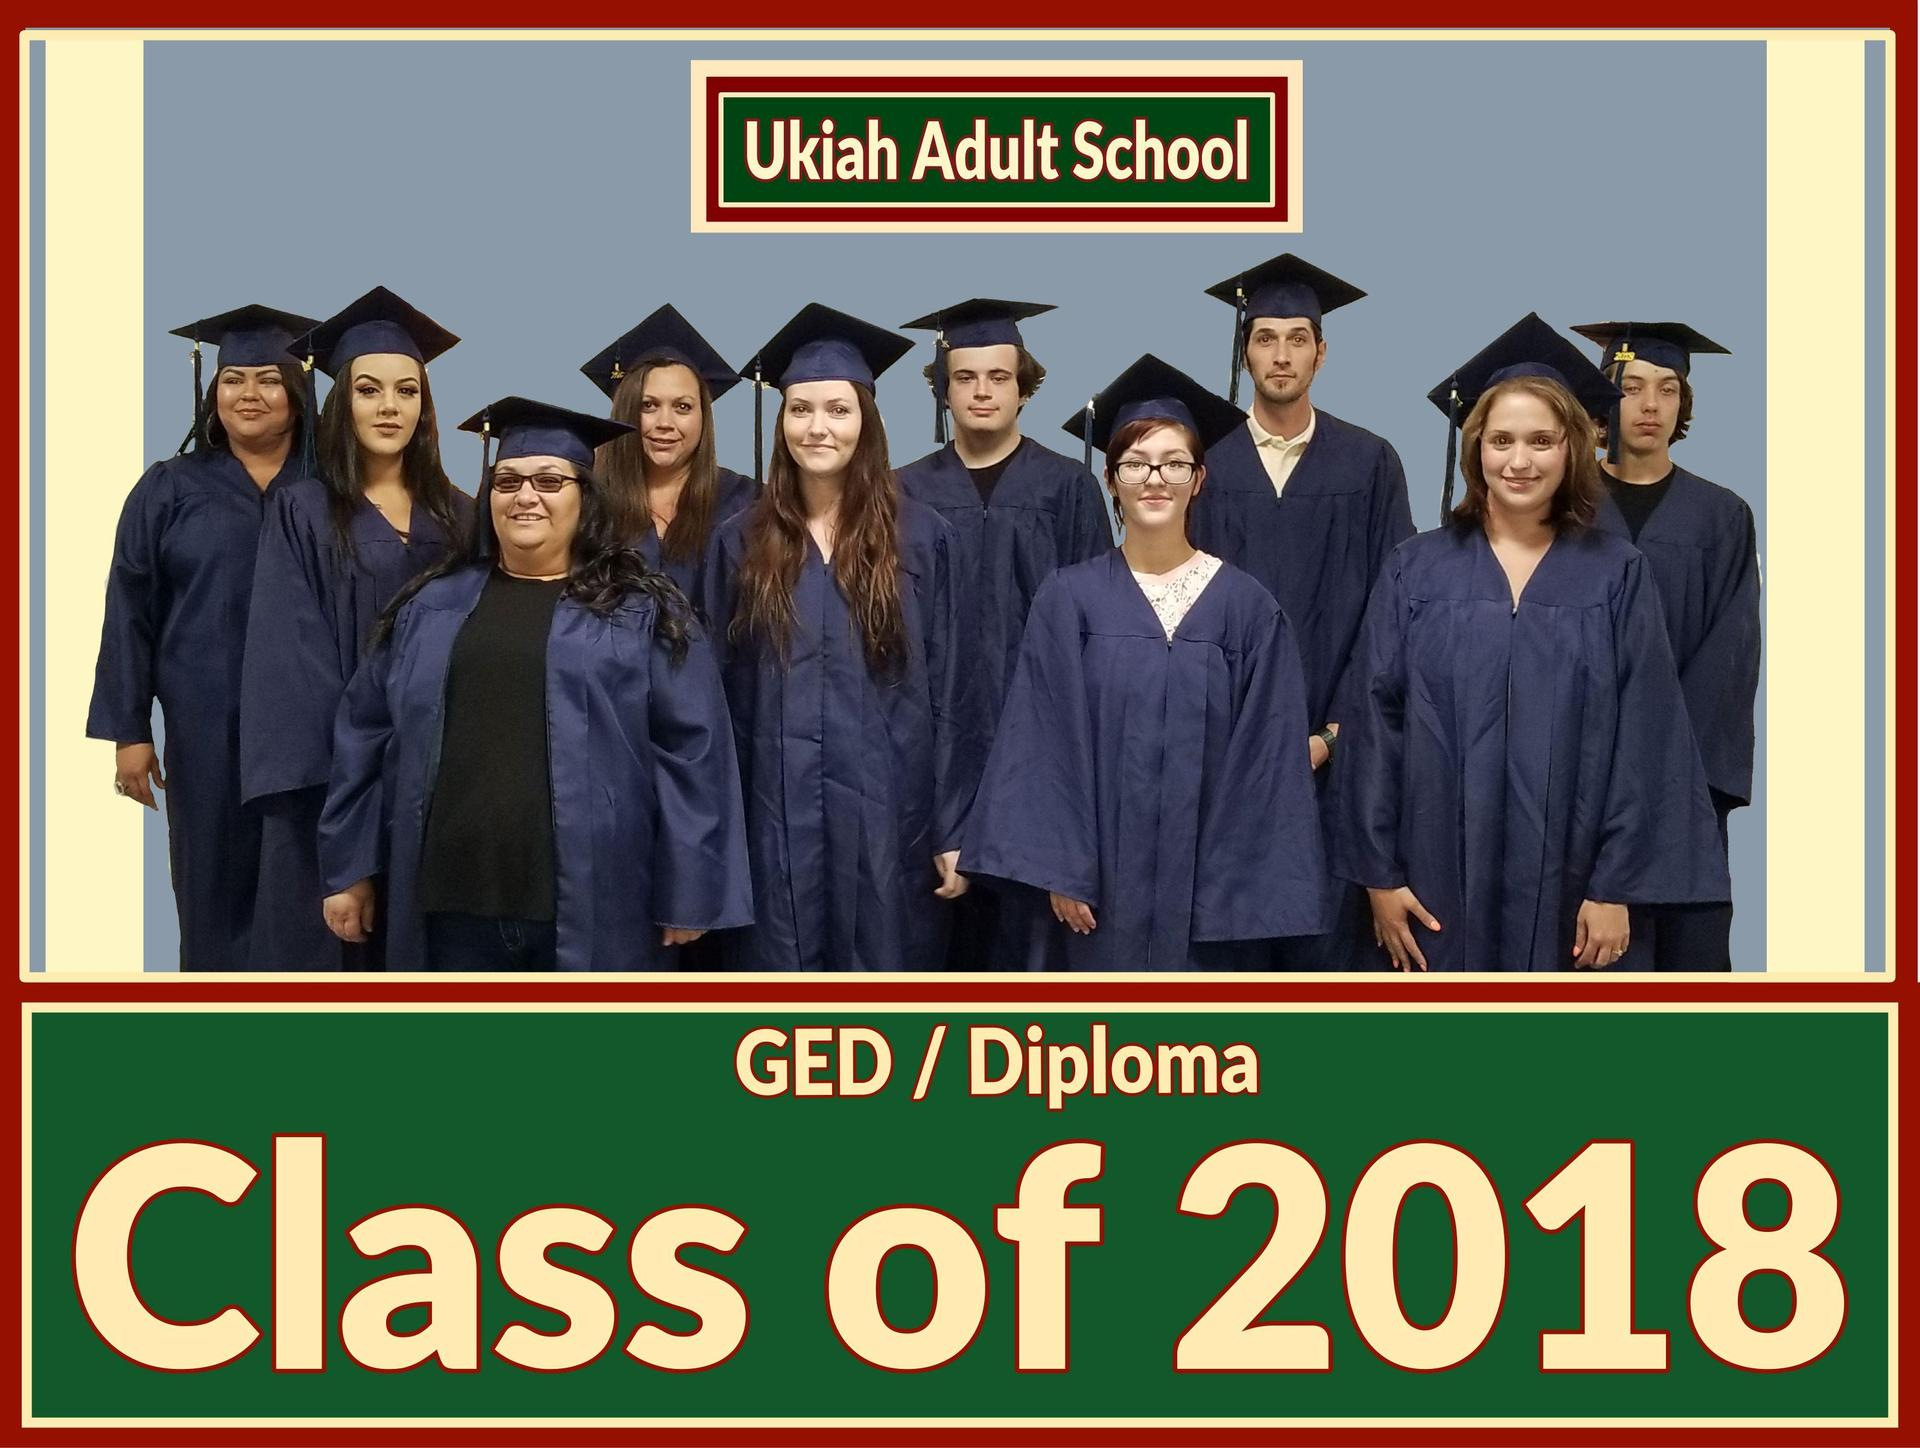 Image of the graduating class od 2018.